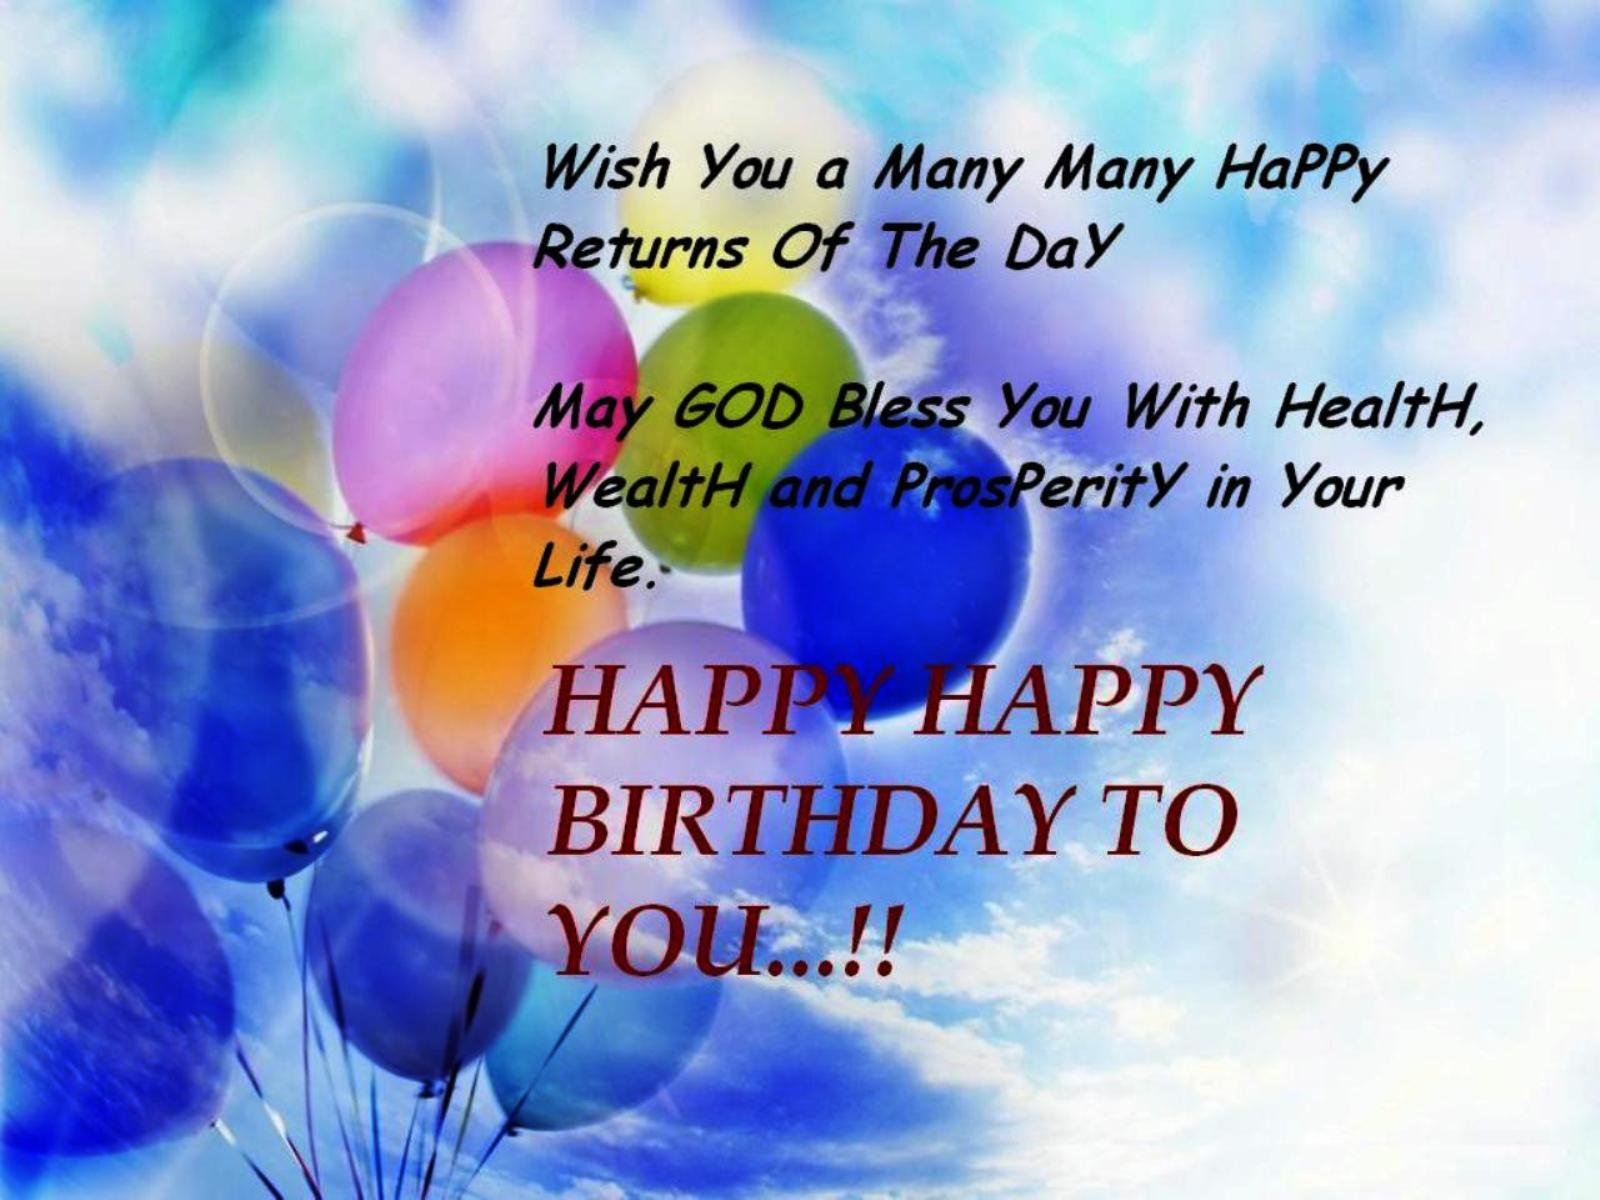 Best Birthday Wishes Quotes Alluring Wonderful Birthday Poems To Write For Your Beloved Grandmother